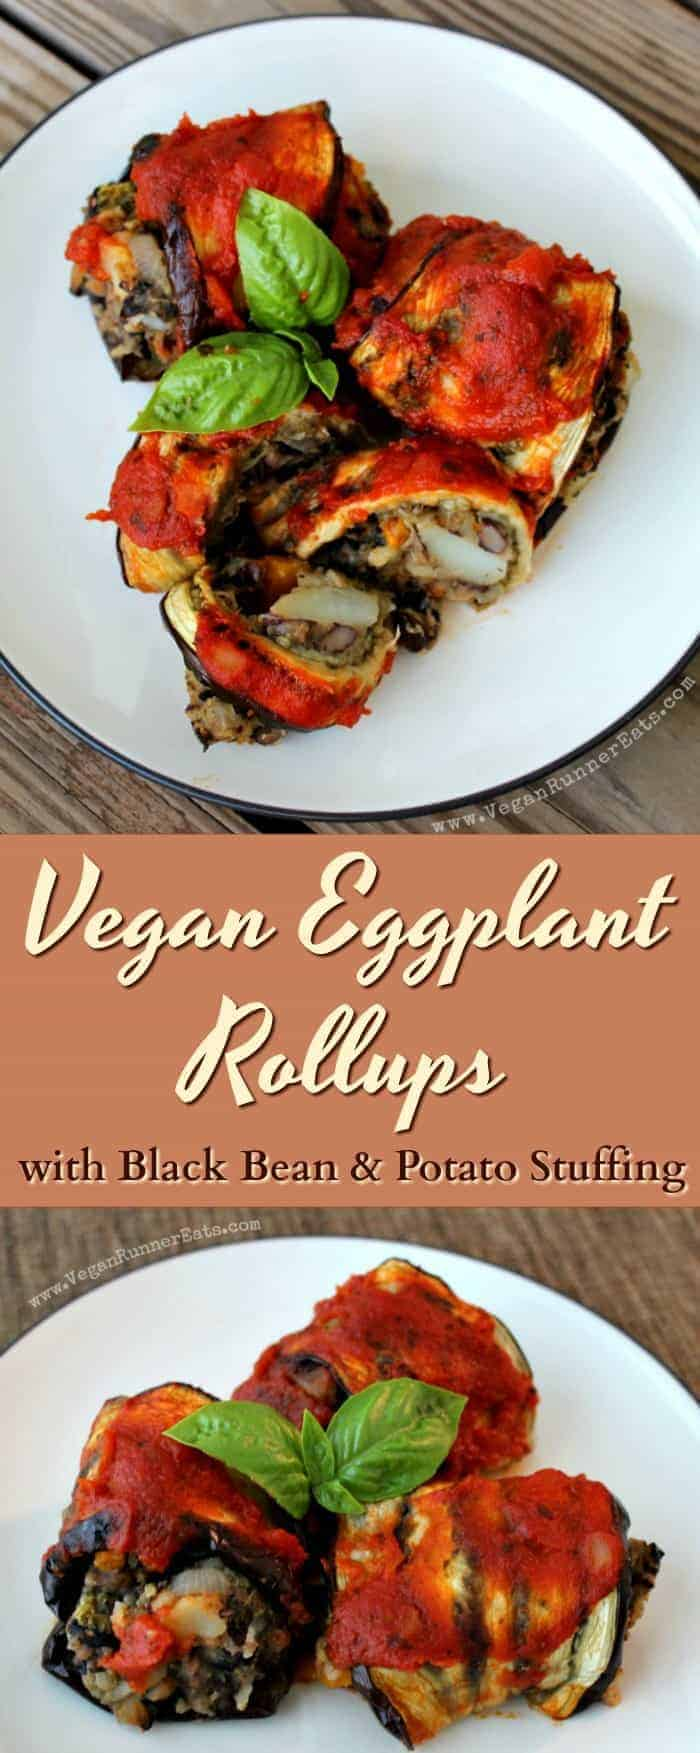 Vegan eggplant roll ups with black bean and potato stuffing - a delicious plant-based twist on a tradition Italian rollatini recipe. Roasted eggplant is stuffed with a potato-veggie filling and baked with pasta sauce. | vegan main course recipes | vegan eggplant recipes | vegan recipe ideas | vegan eggplant roll ups | vegan eggplant rollatini | eggplant roll ups recipe | #veganeggplantrecipes #veganmaincourserecipes #vegetarianeggplantrecipes #veganrecipes #vegandinner